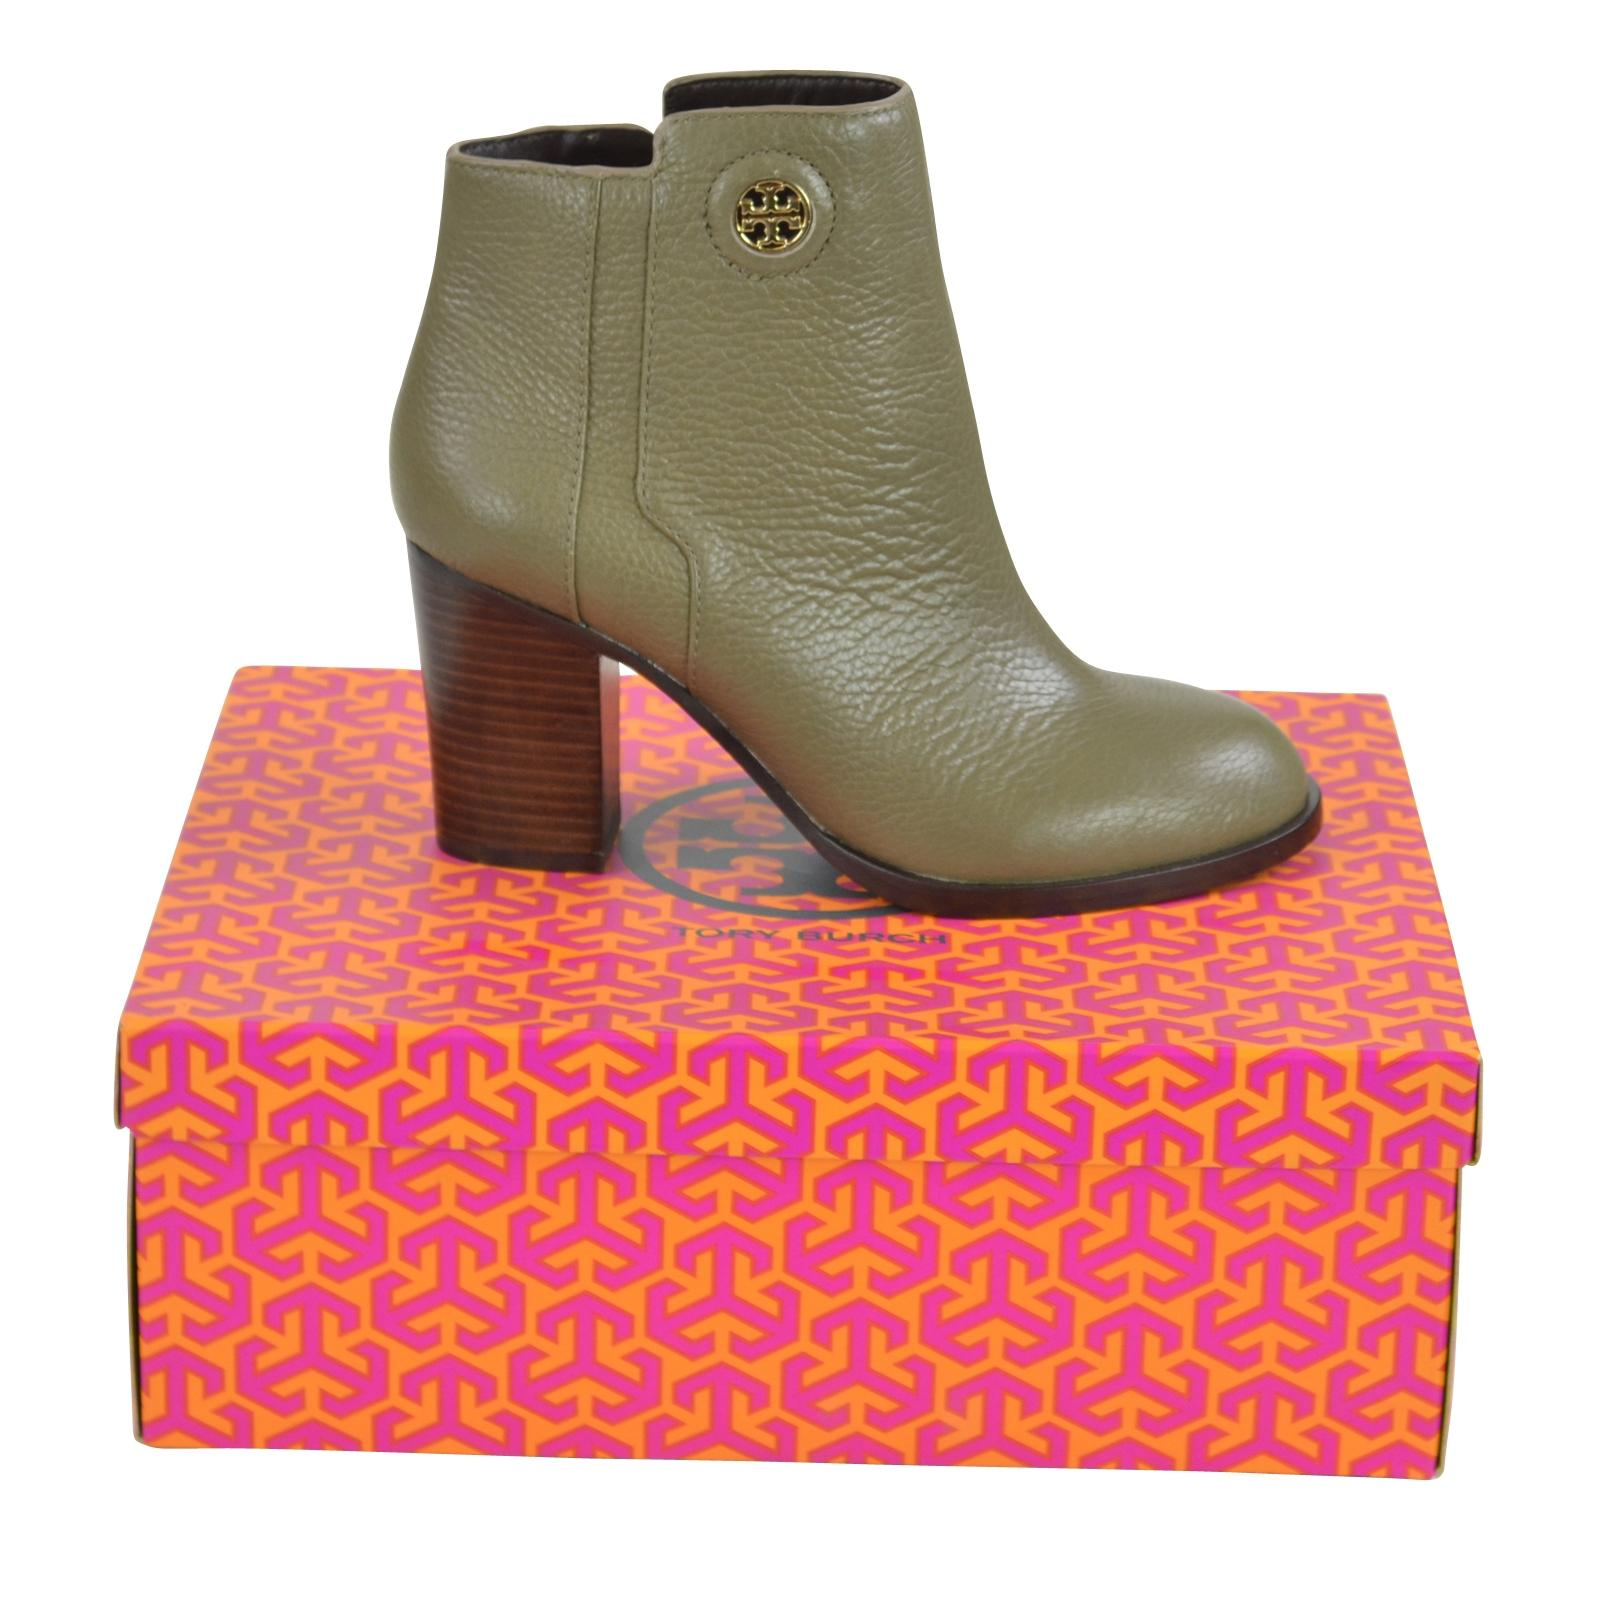 Tory Burch Porcini Junction 85 Tumbled Leather Boots/Booties Size US 8.5 Regular (M, B)